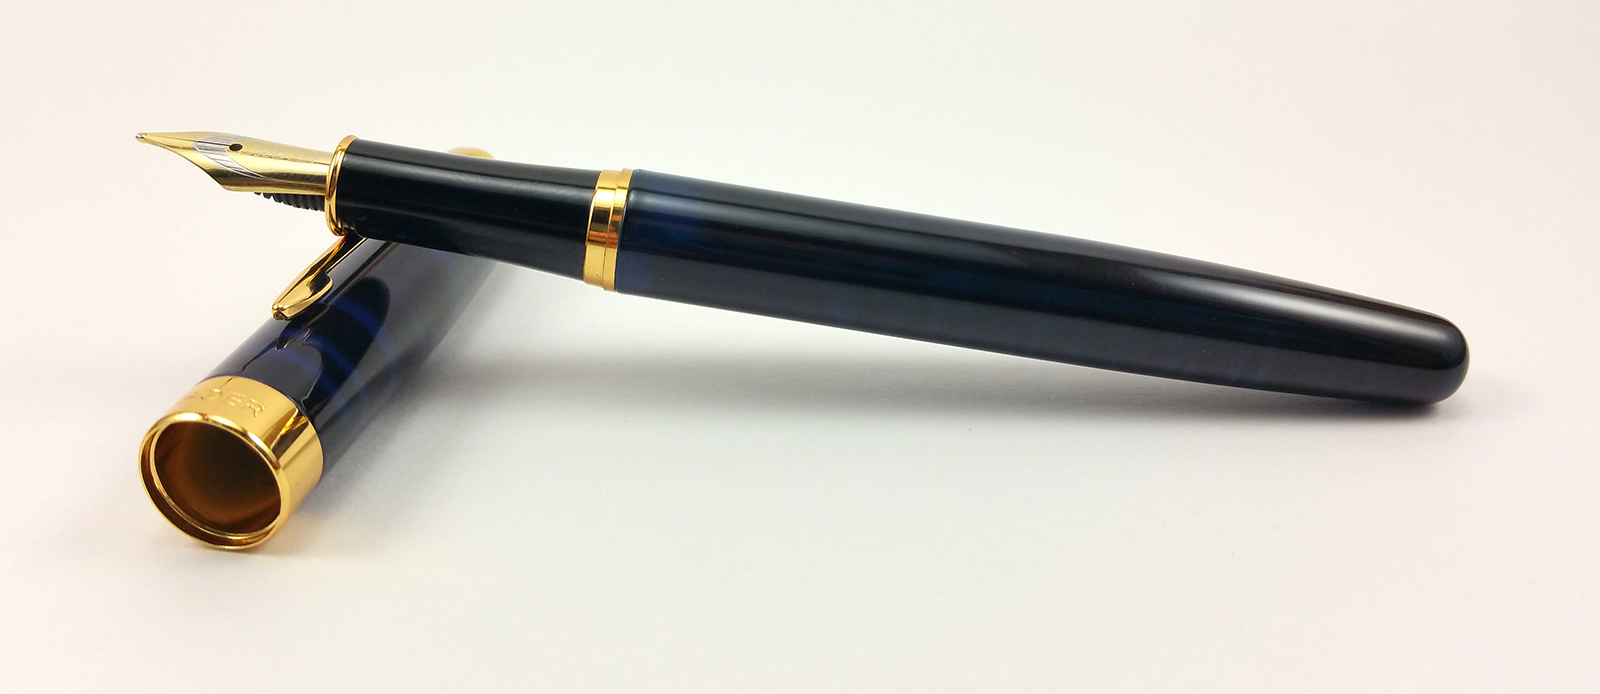 Baoer 388 Fountain Pen Uncapped